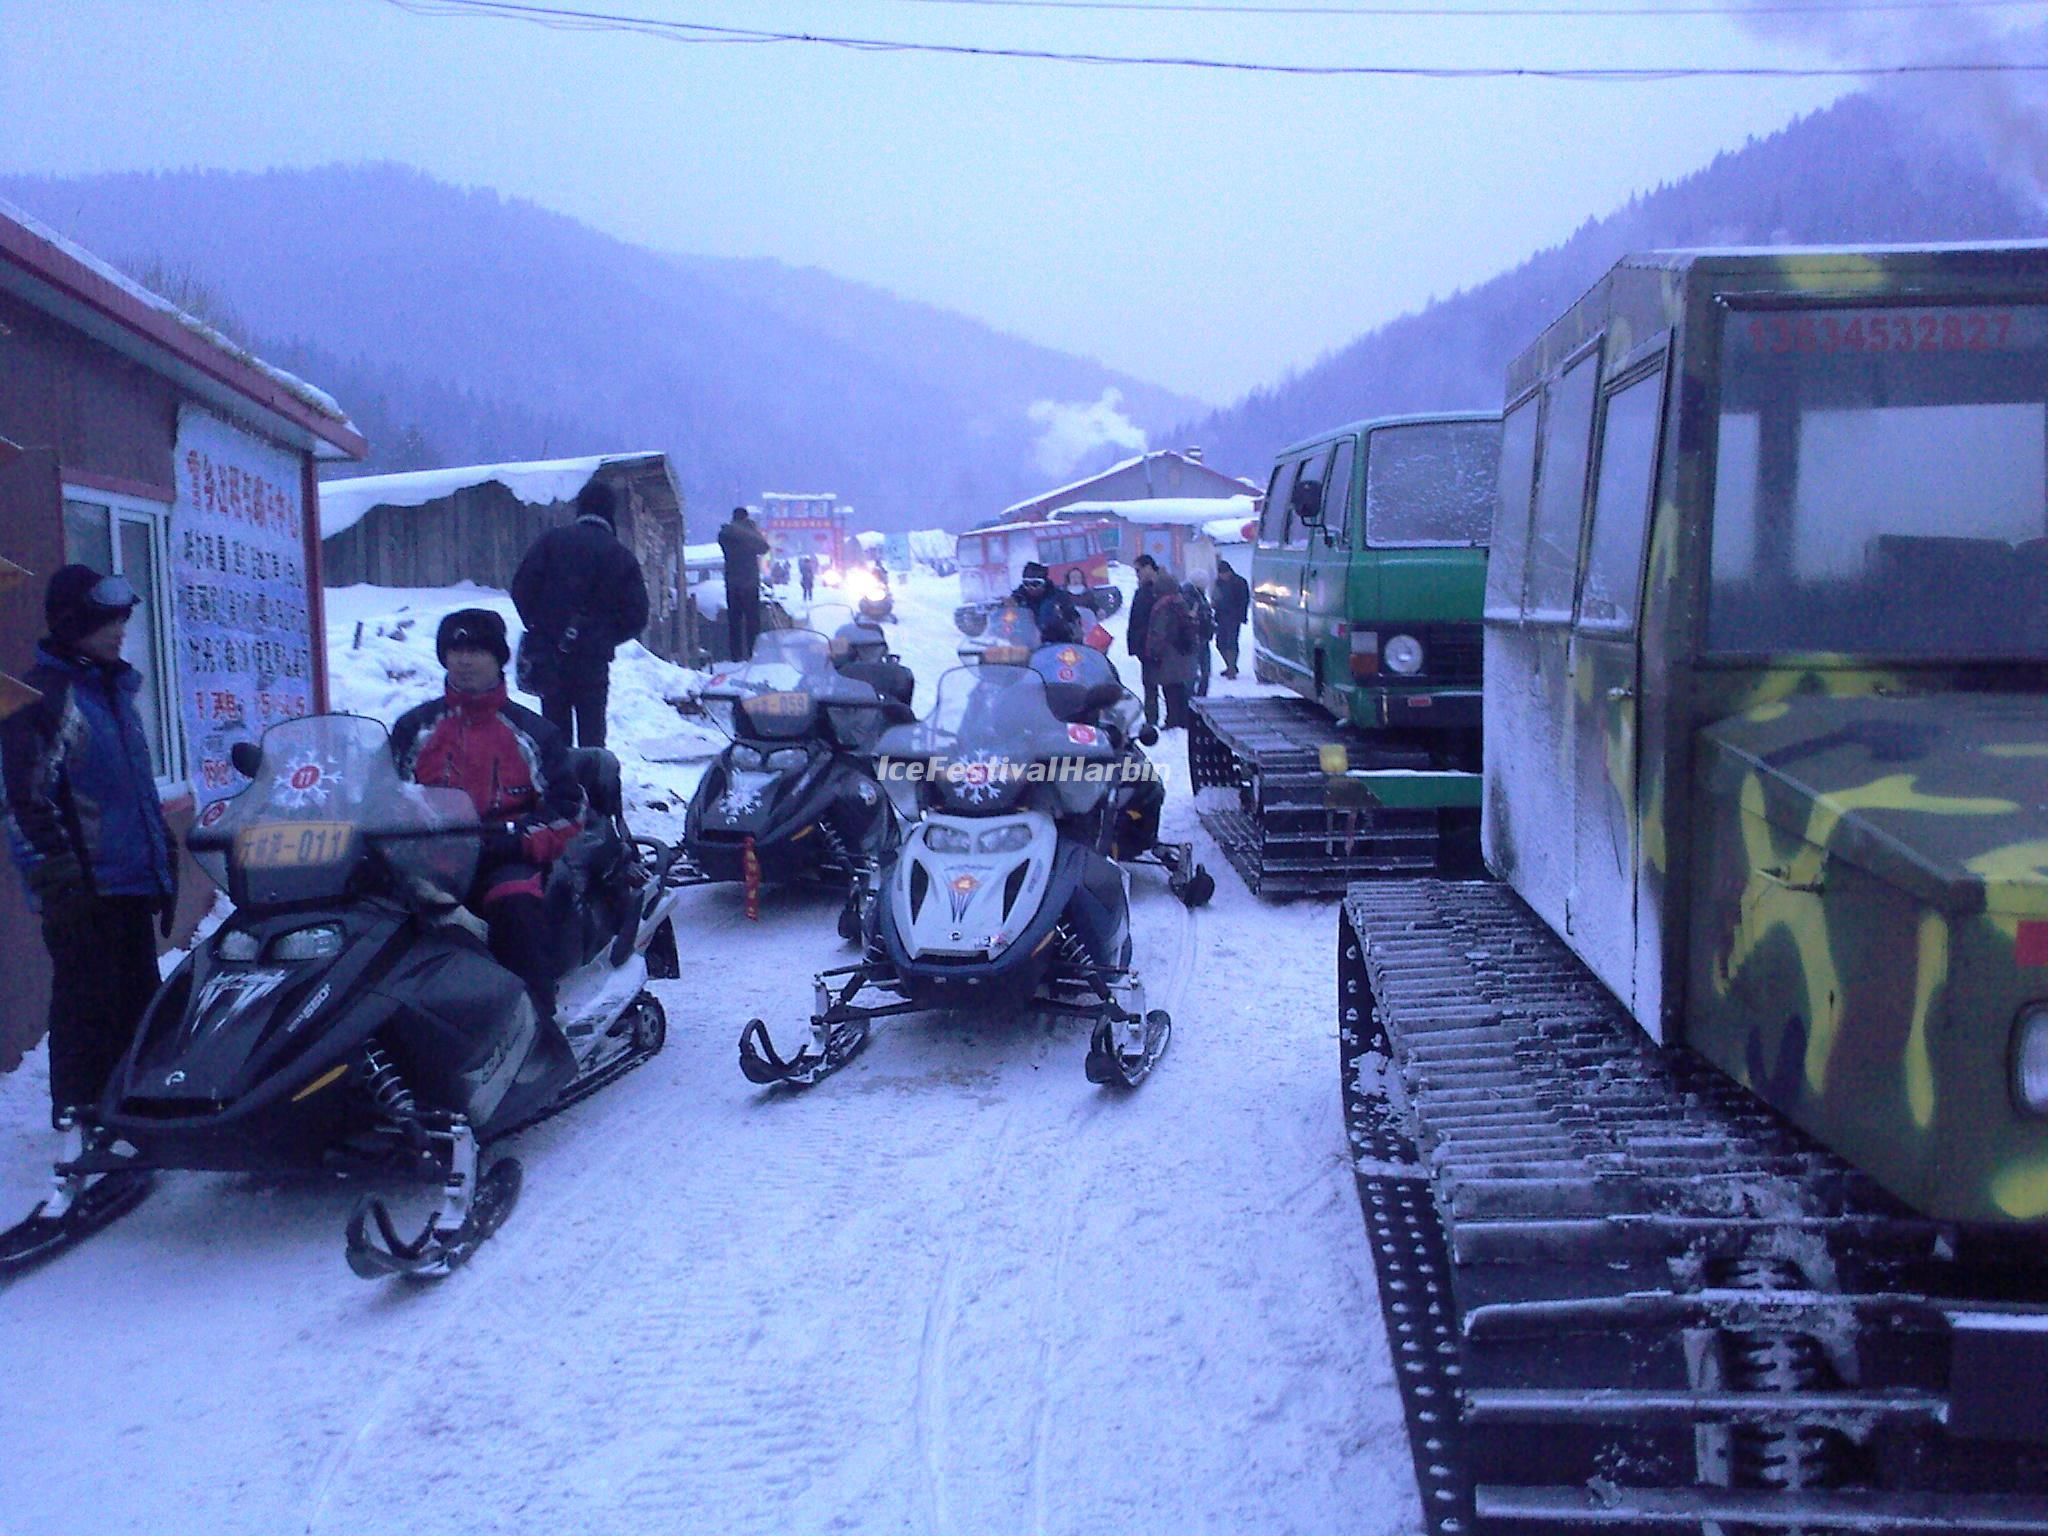 Snowmobiles in China's Snow Town